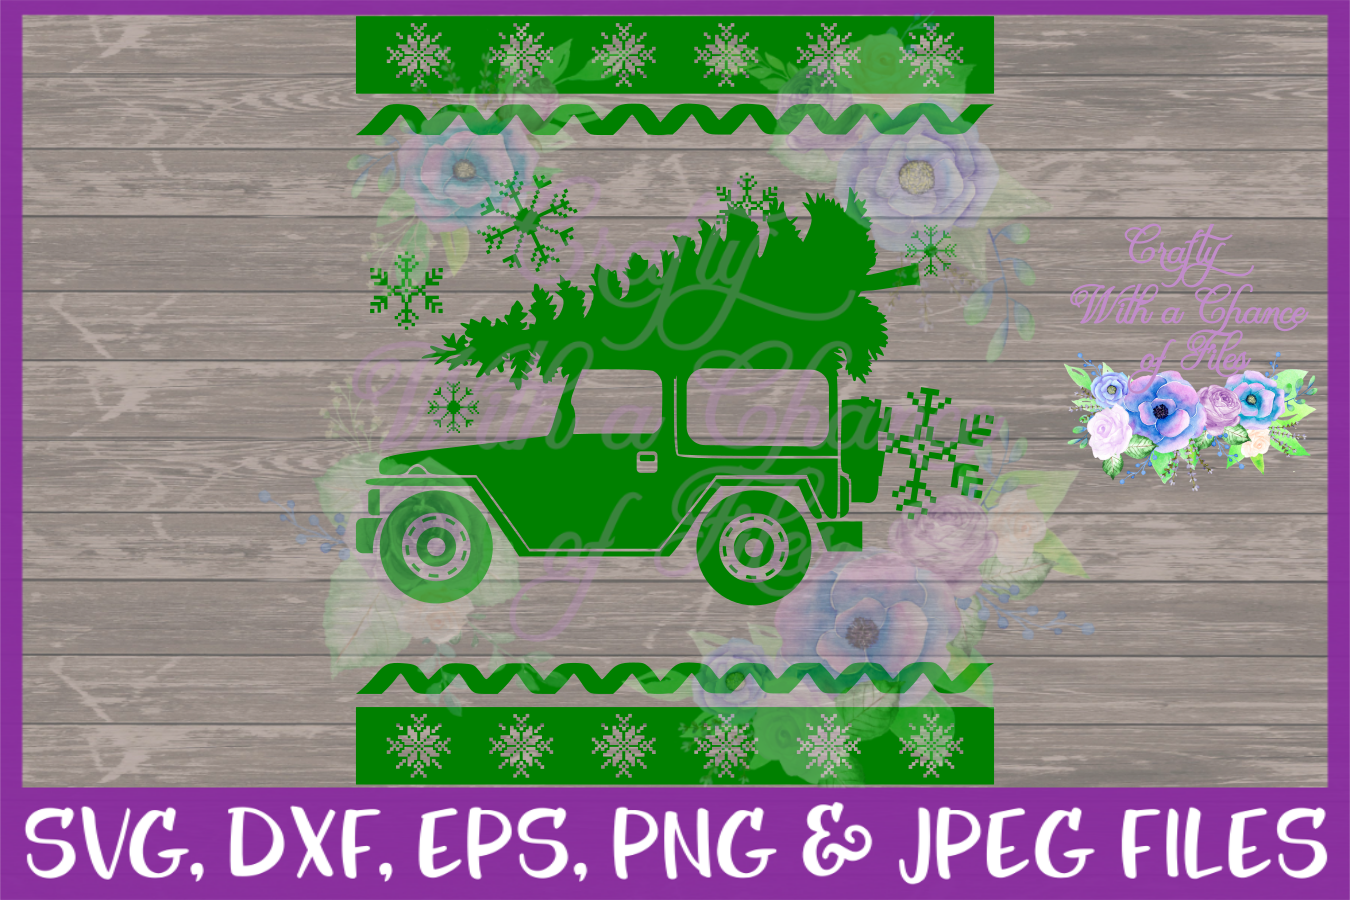 Ugly Sweater SVG - Christmas Party Shirt Design example image 2